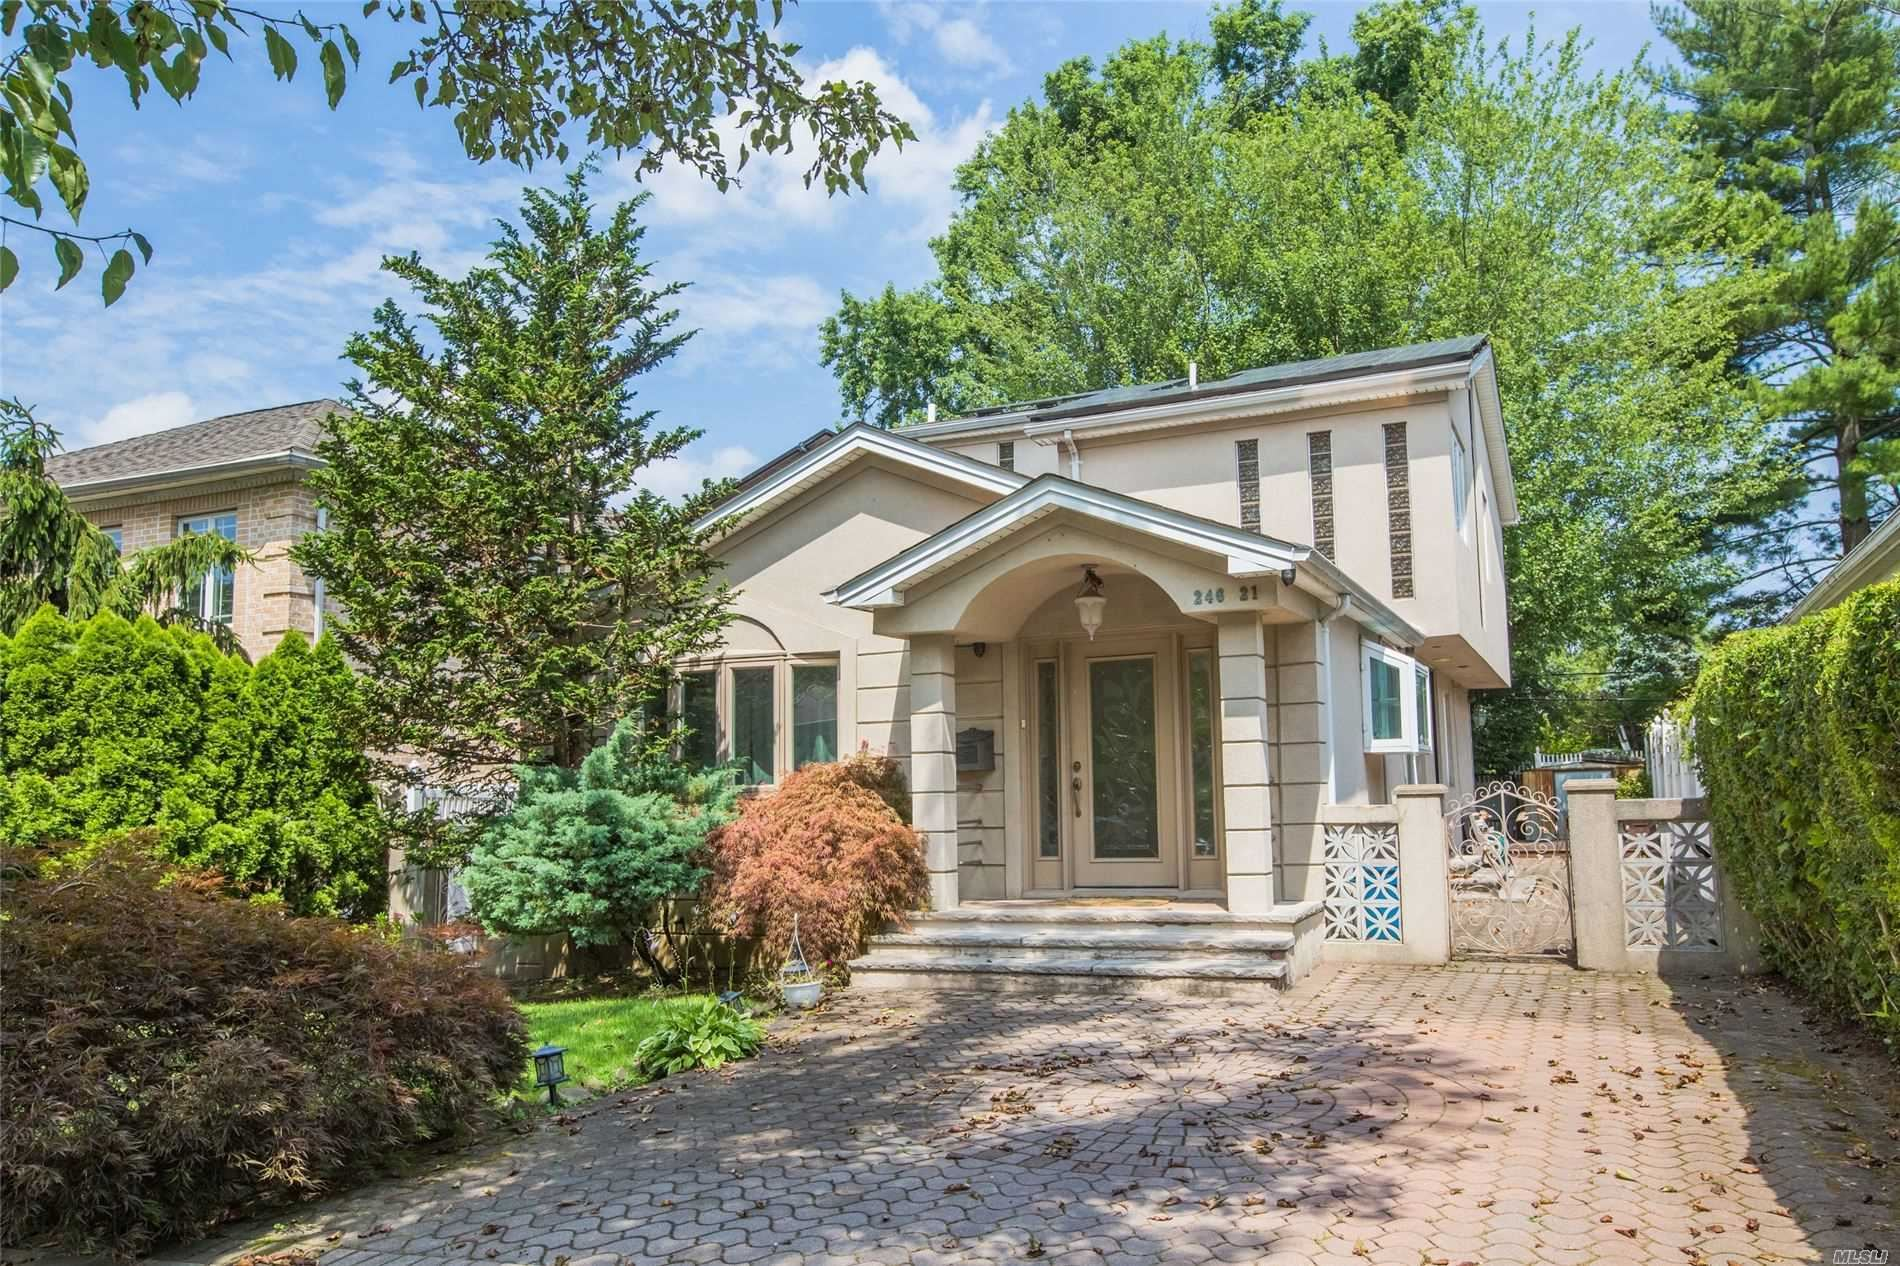 246-21 52 Avenue, Little Neck, NY 11362 - MLS#: 3215674